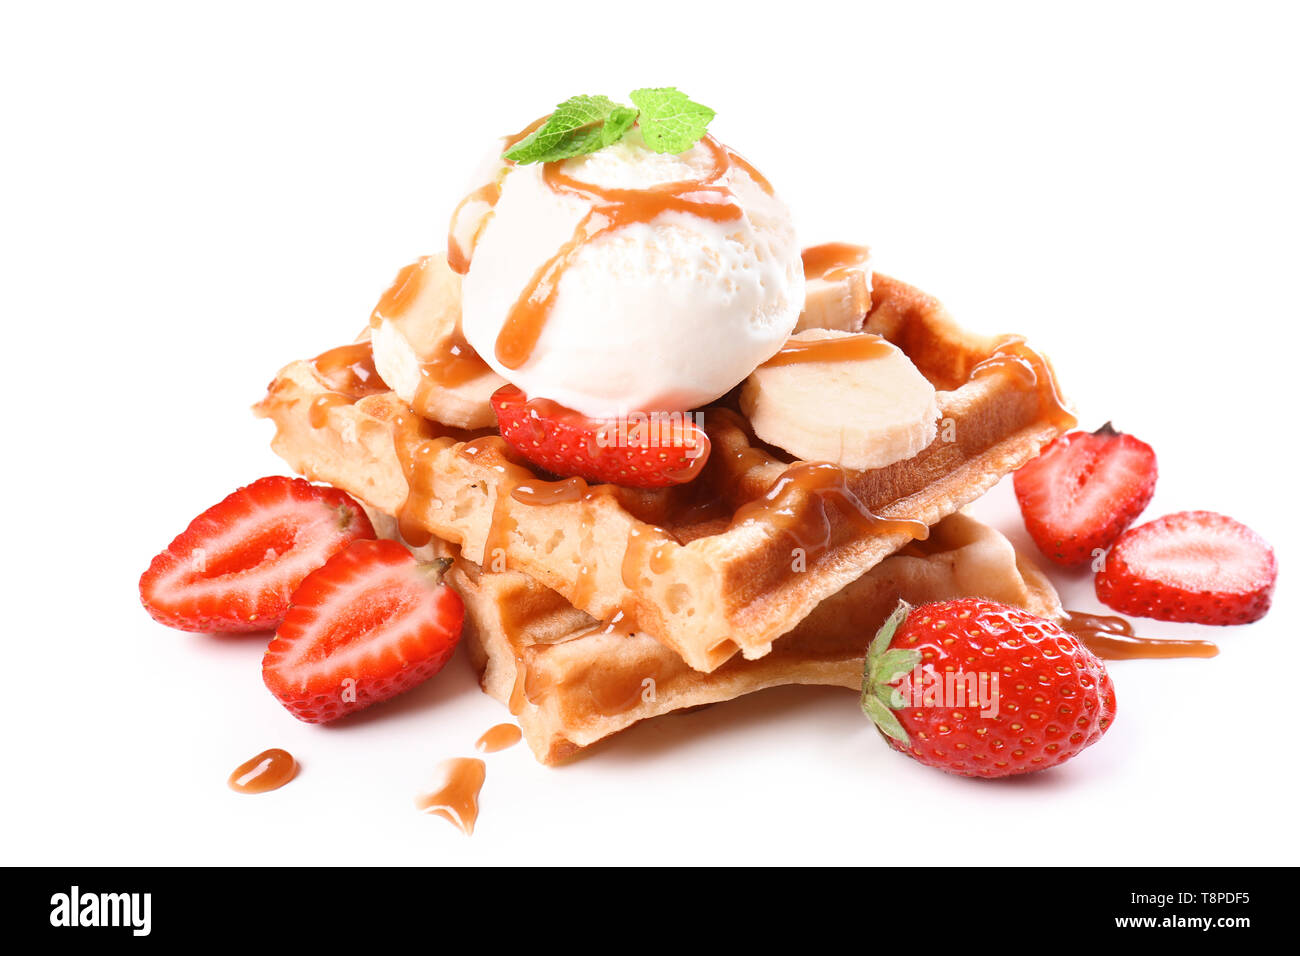 Delicious waffles with fruits and ice cream on white background - Stock Image